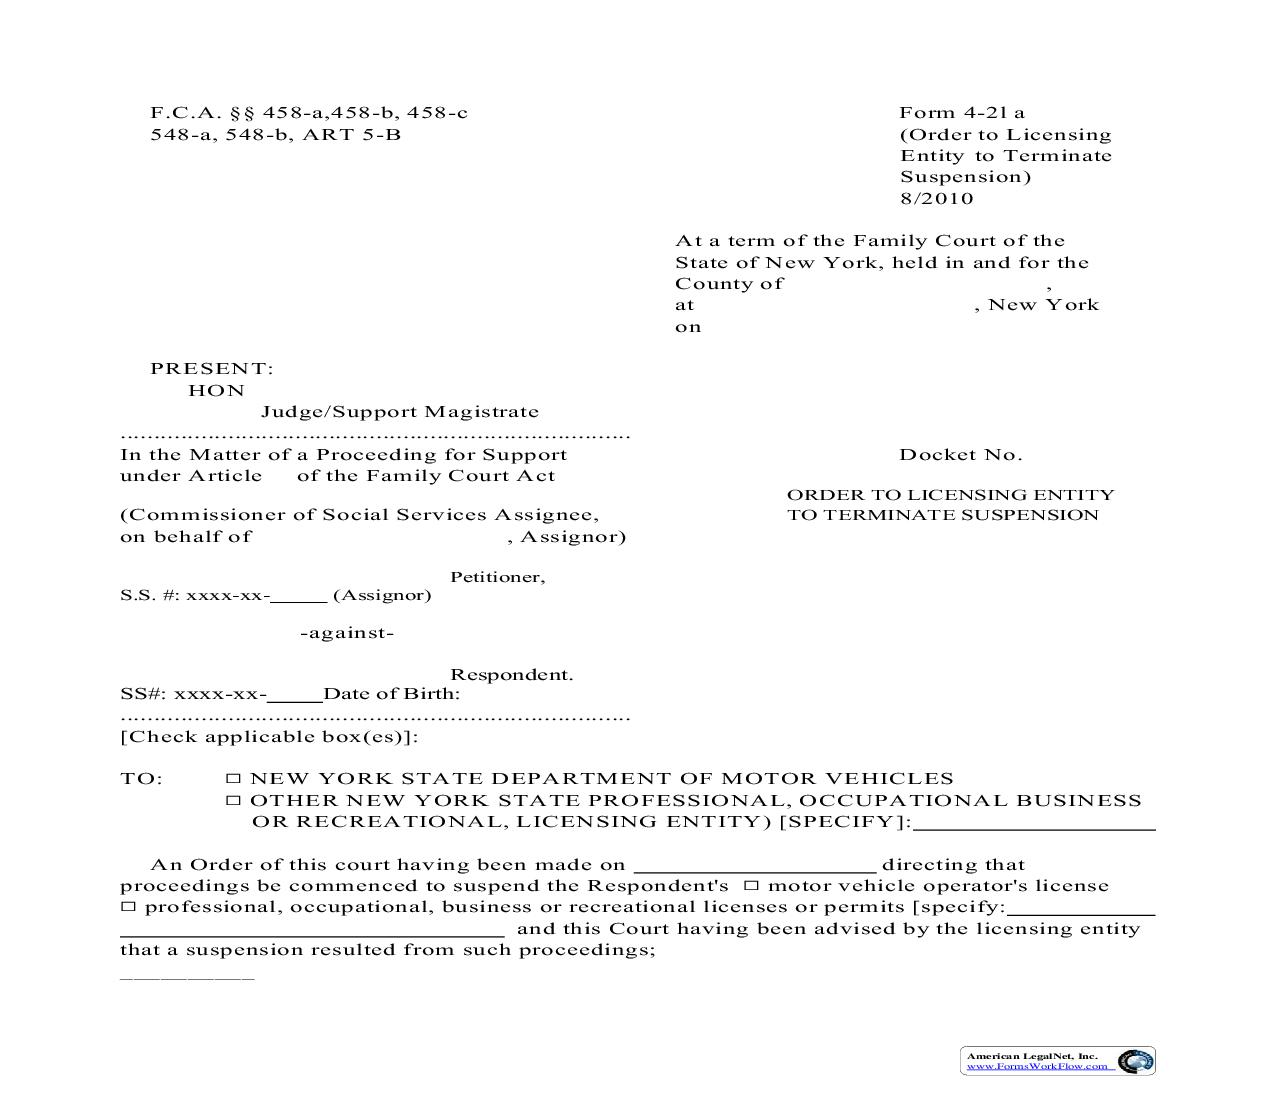 Order To Licensing Entity To Terminate Suspension {4-21a} | Pdf Fpdf Doc Docx | New York